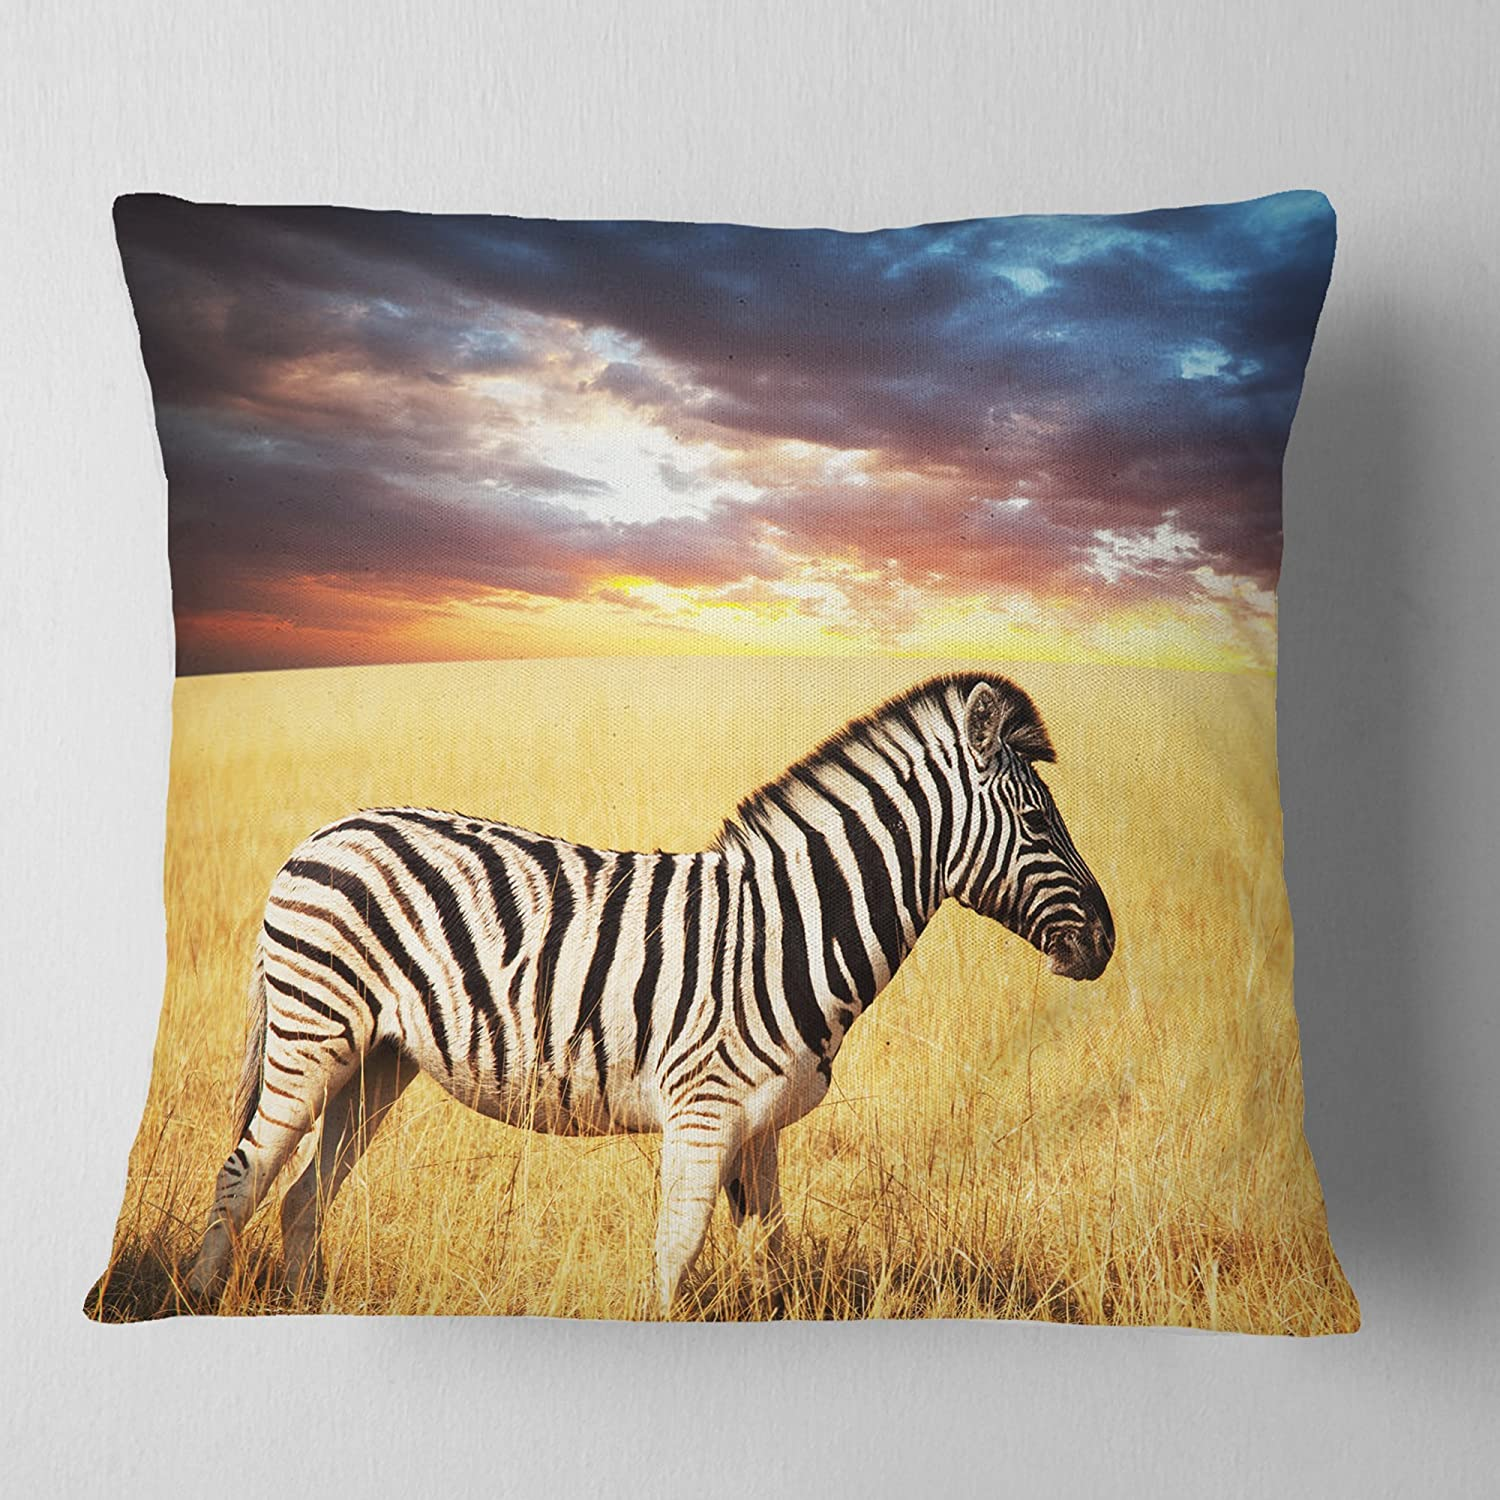 Designart Cu12583 18 18 Solitary Zebra Grassland African Cushion Cover For Living Room Sofa Throw Pillow 18 In X 18 In In